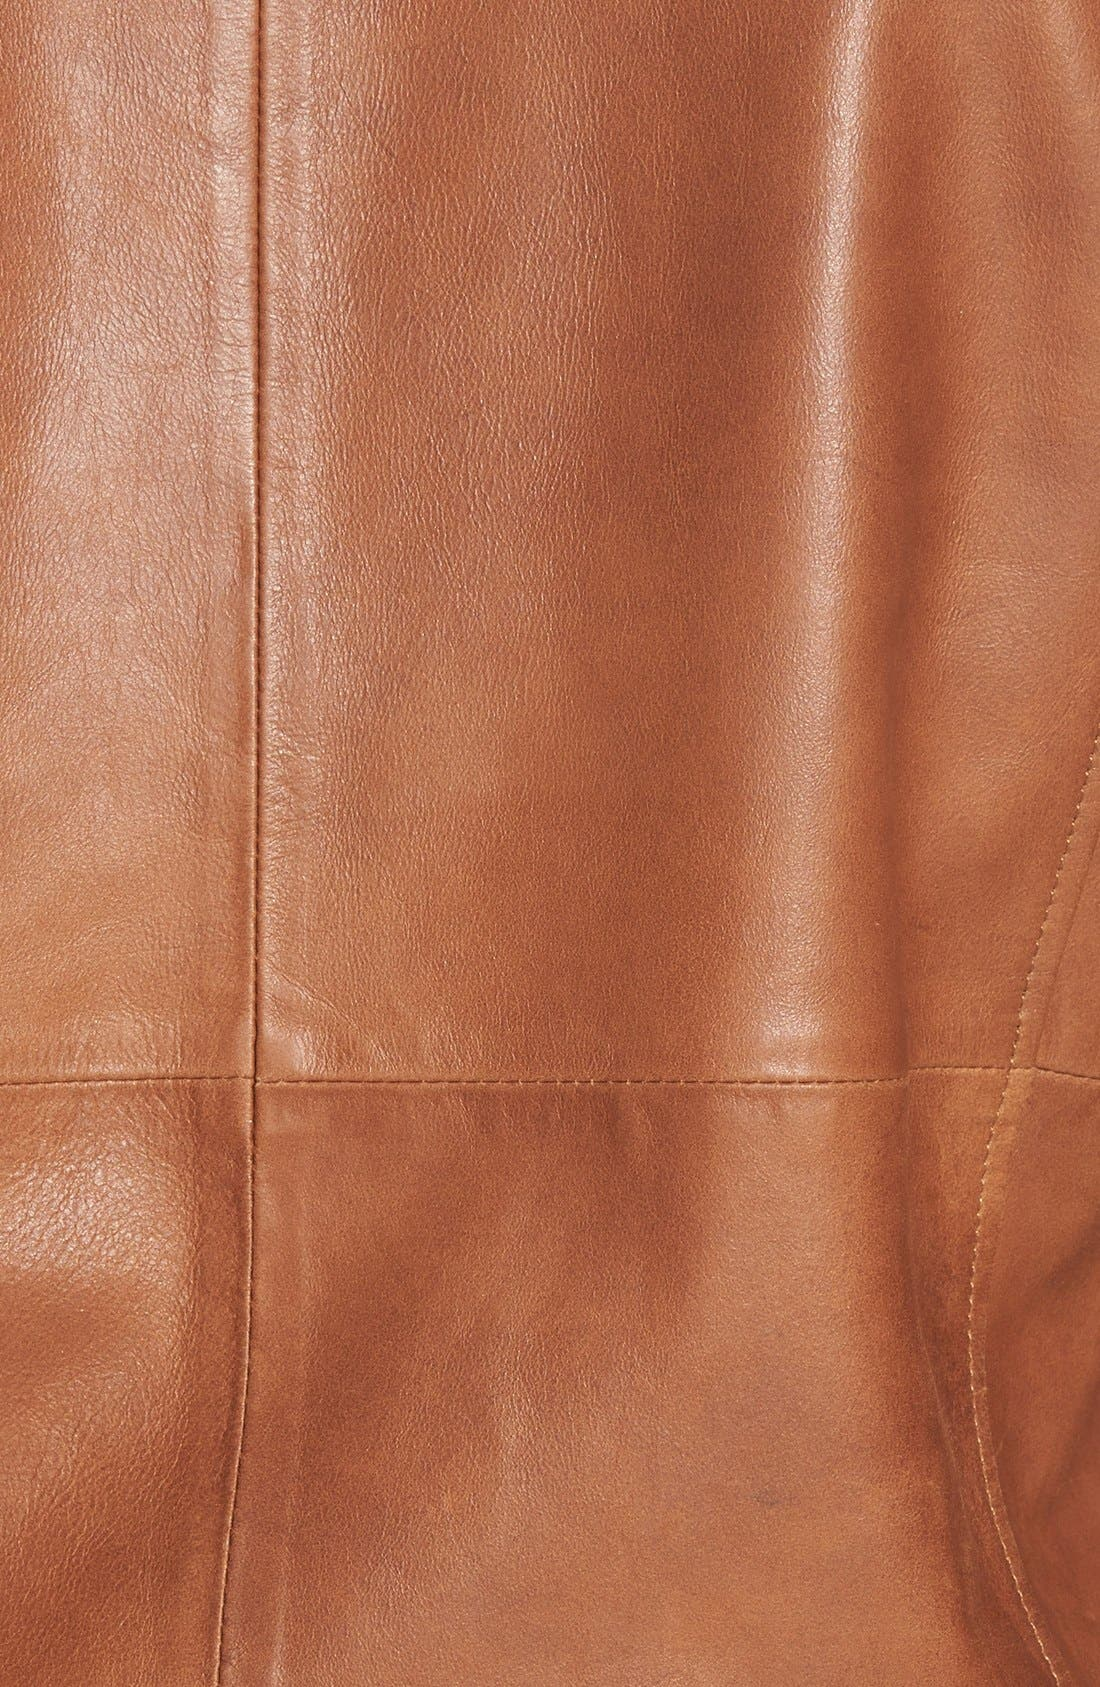 Leather Bomber Jacket,                             Alternate thumbnail 8, color,